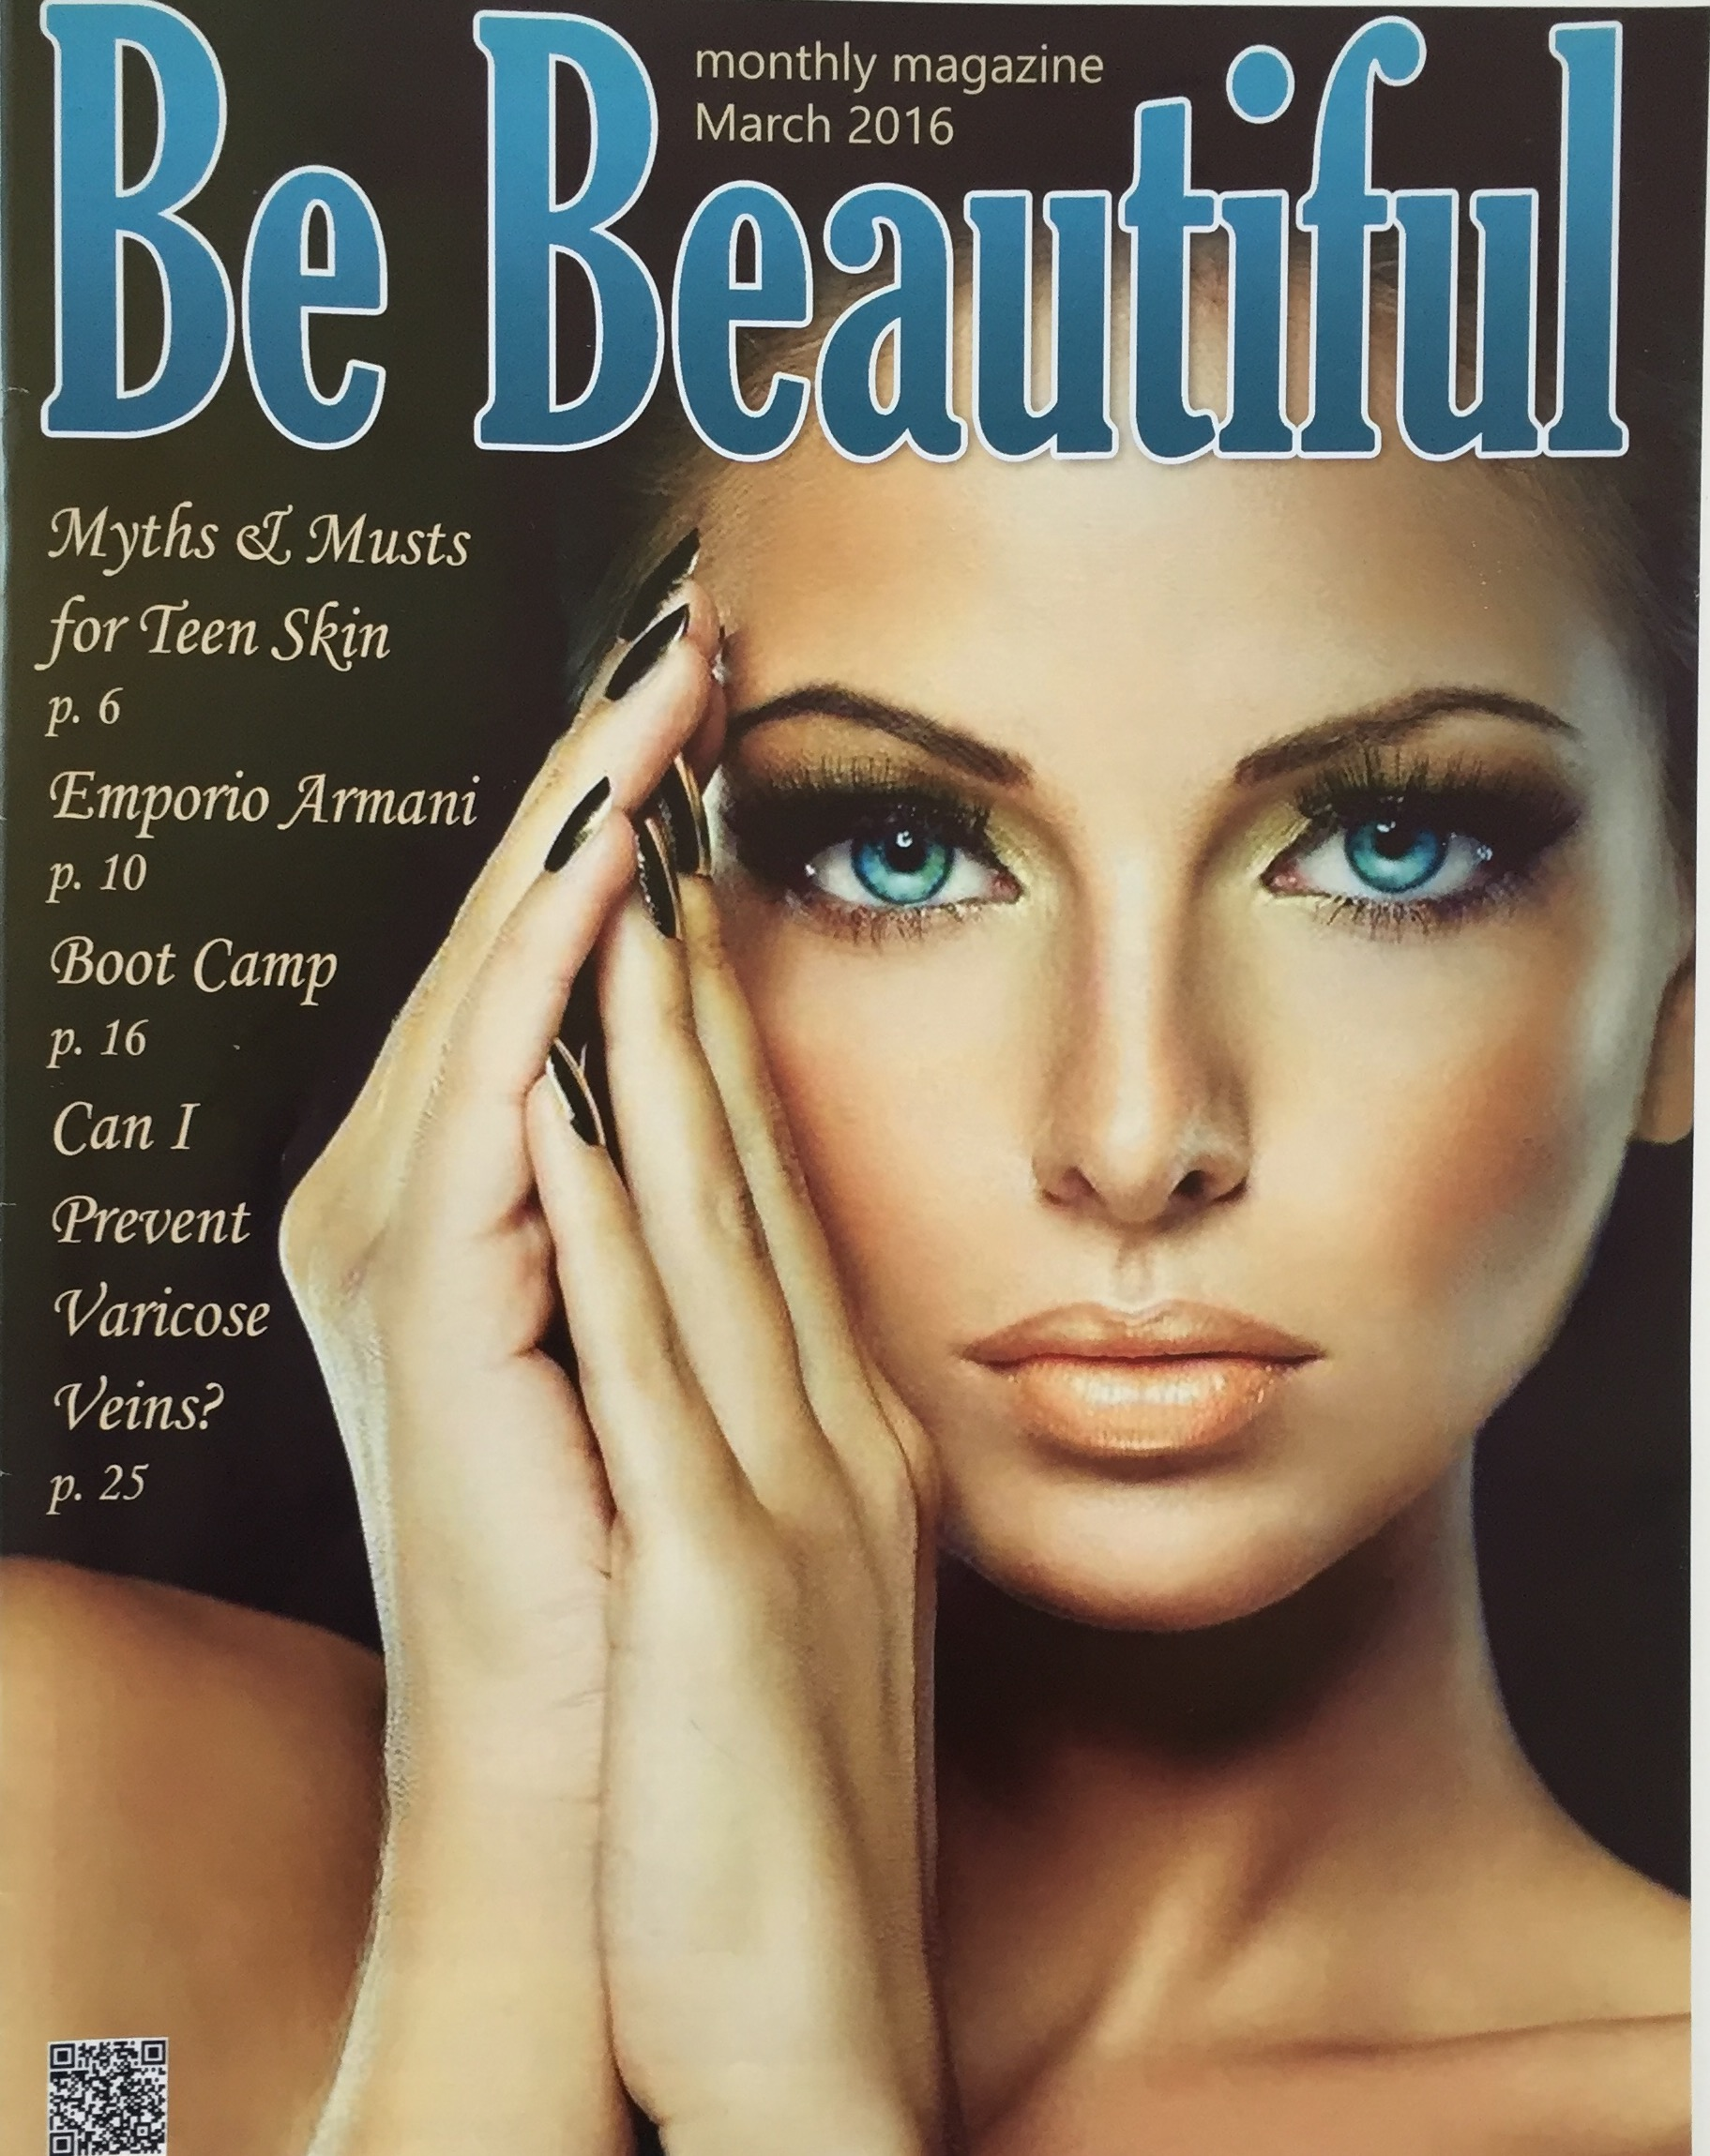 Dean Davidson, The Voice Clinic with Aaron Low, X Body, EMS Training in Be Beautiful Magazine